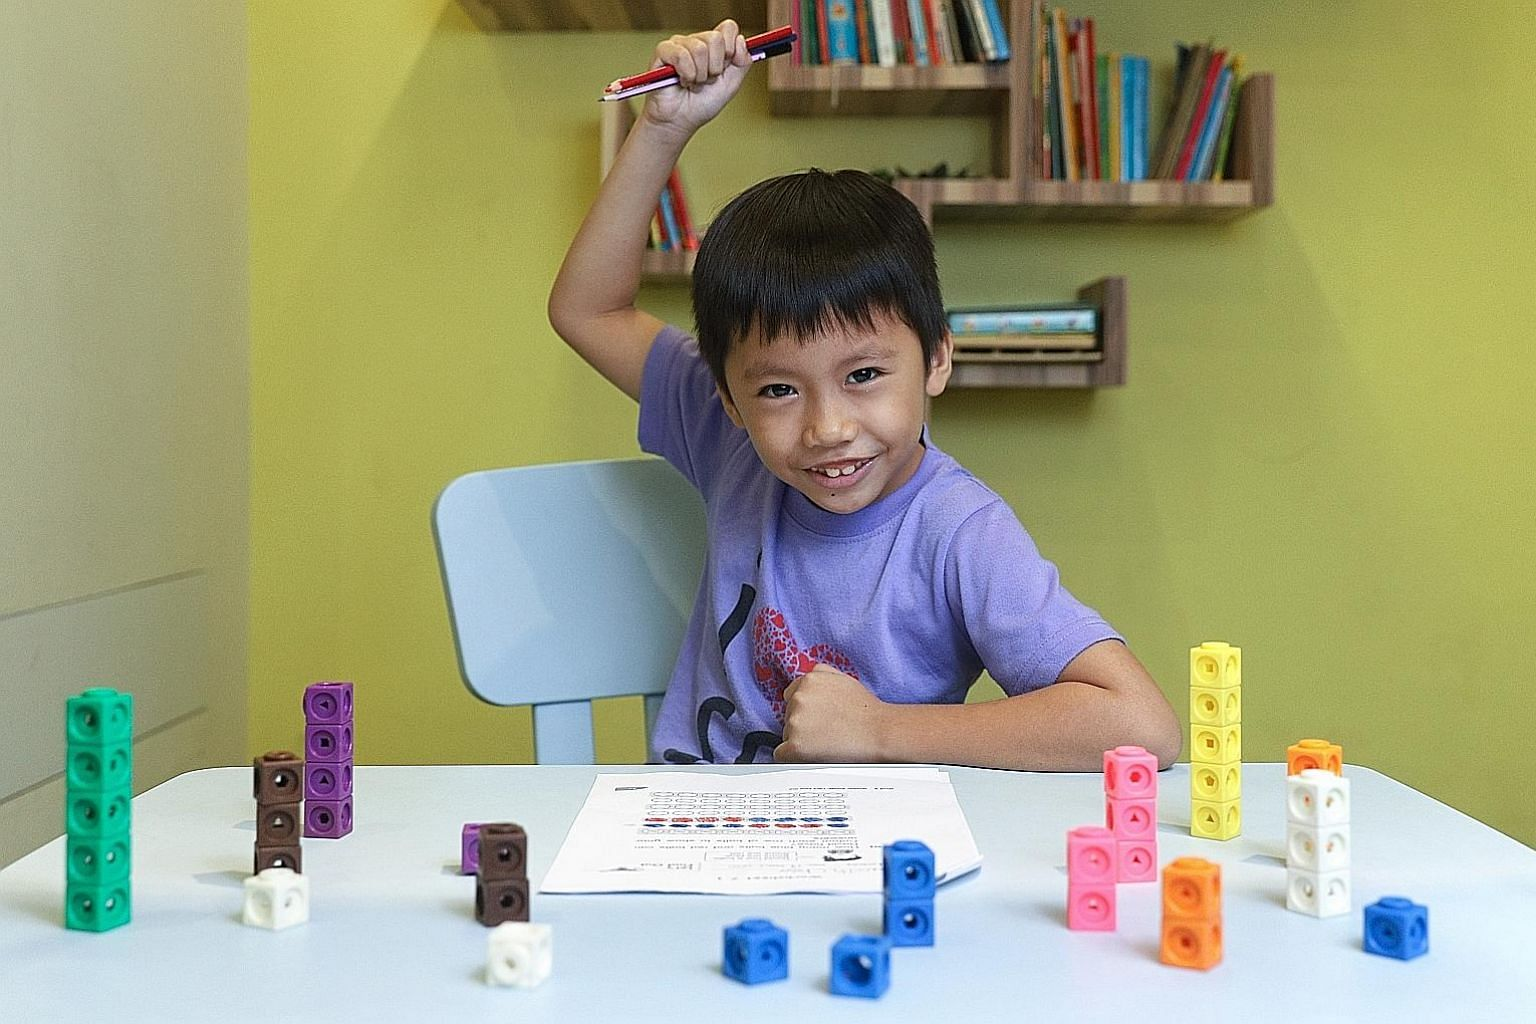 Kenneth Chow, six, could barely speak English when he arrived in Singapore two years ago from Indonesia, but is now fluent in the language, thanks to a programme by ReadAble. The volunteer group is part of national scheme ComLink, which provides proa